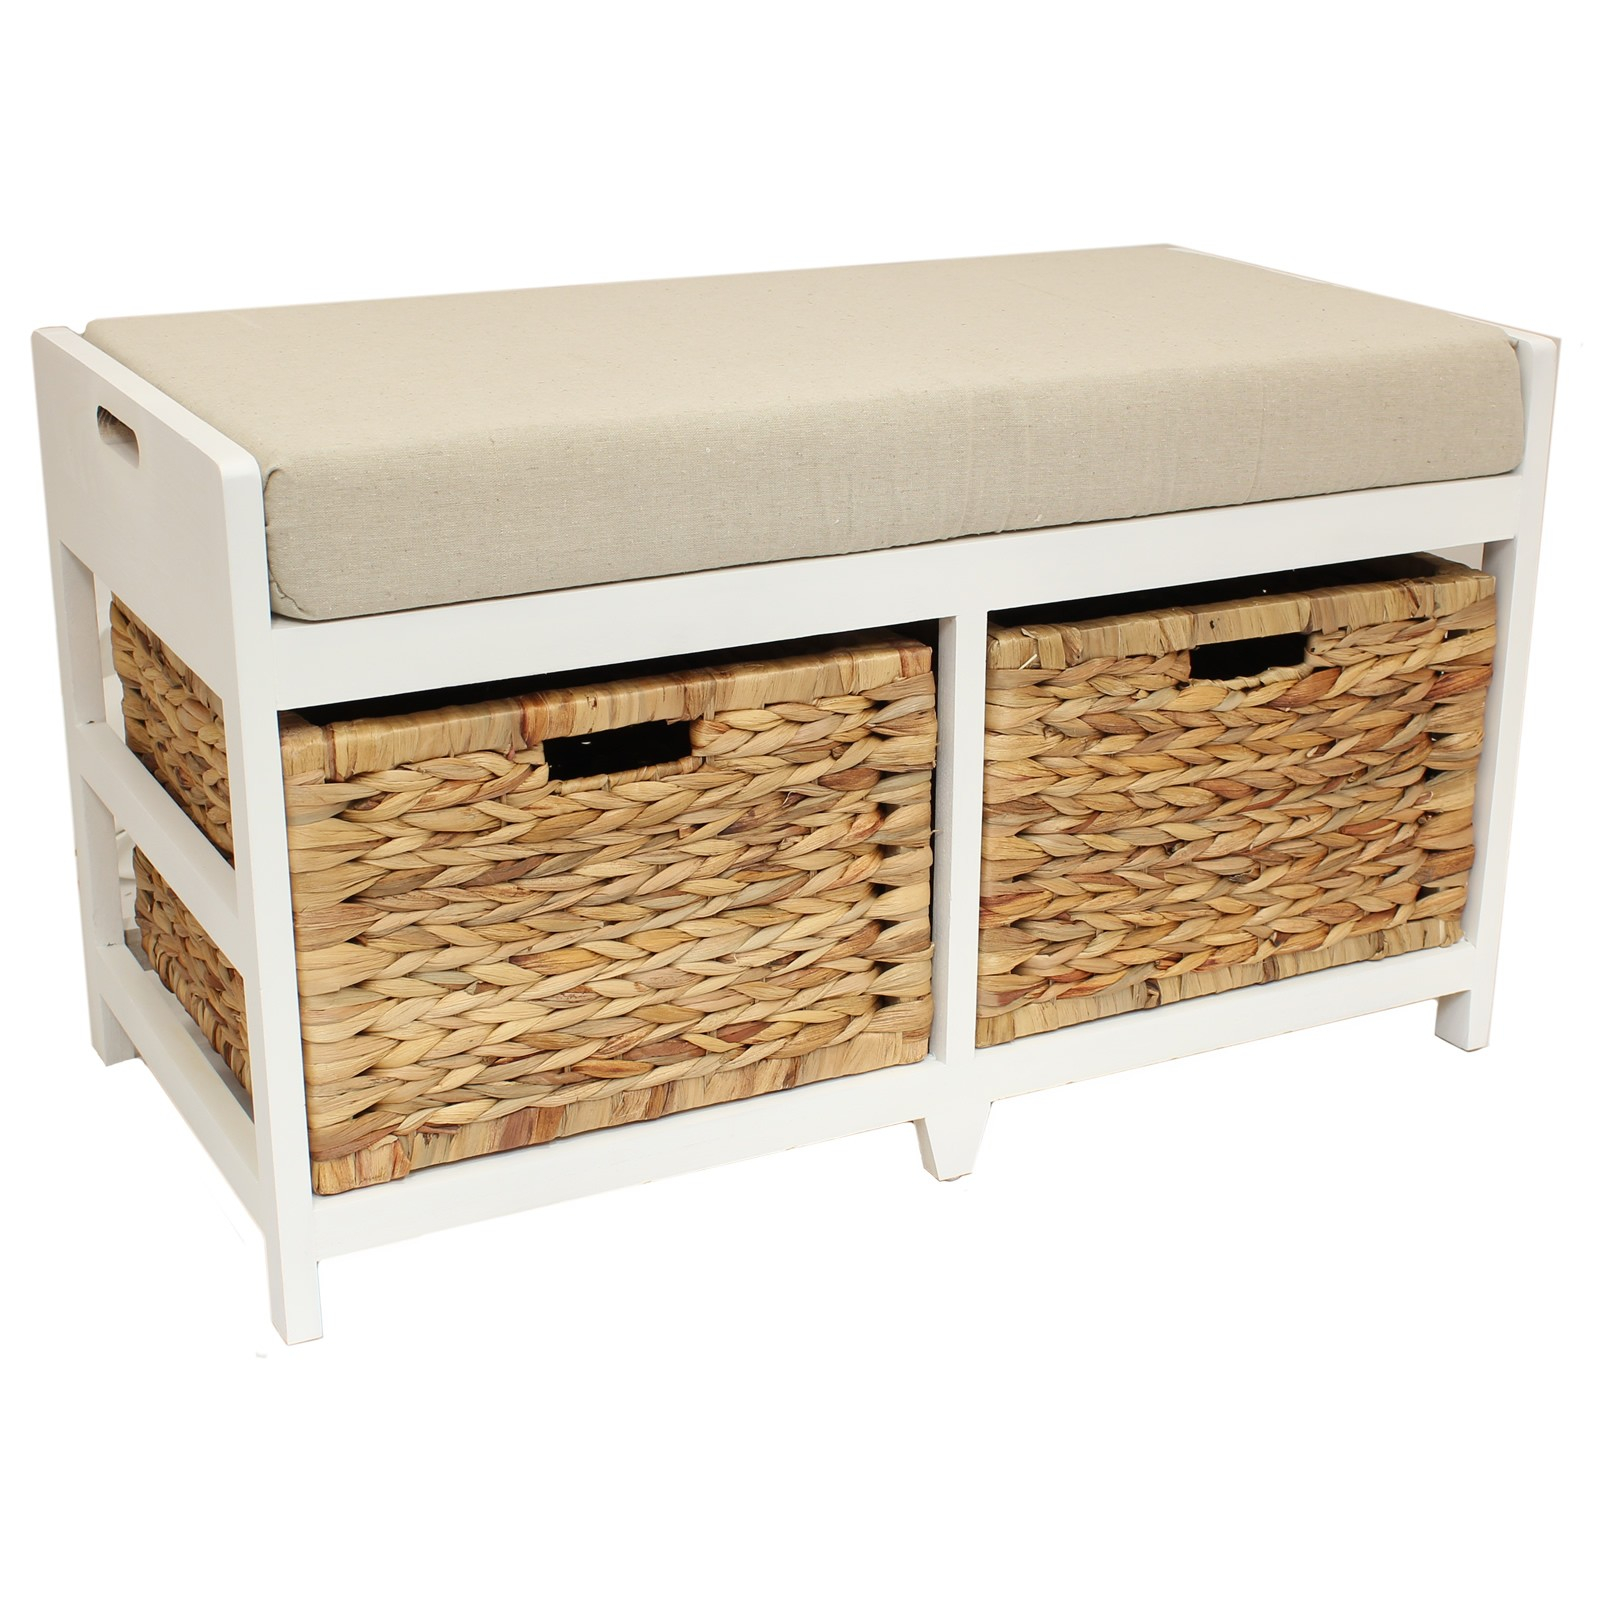 Bathroom Modern Bathroom Bench With Storage Design Long New pertaining to size 1600 X 1600